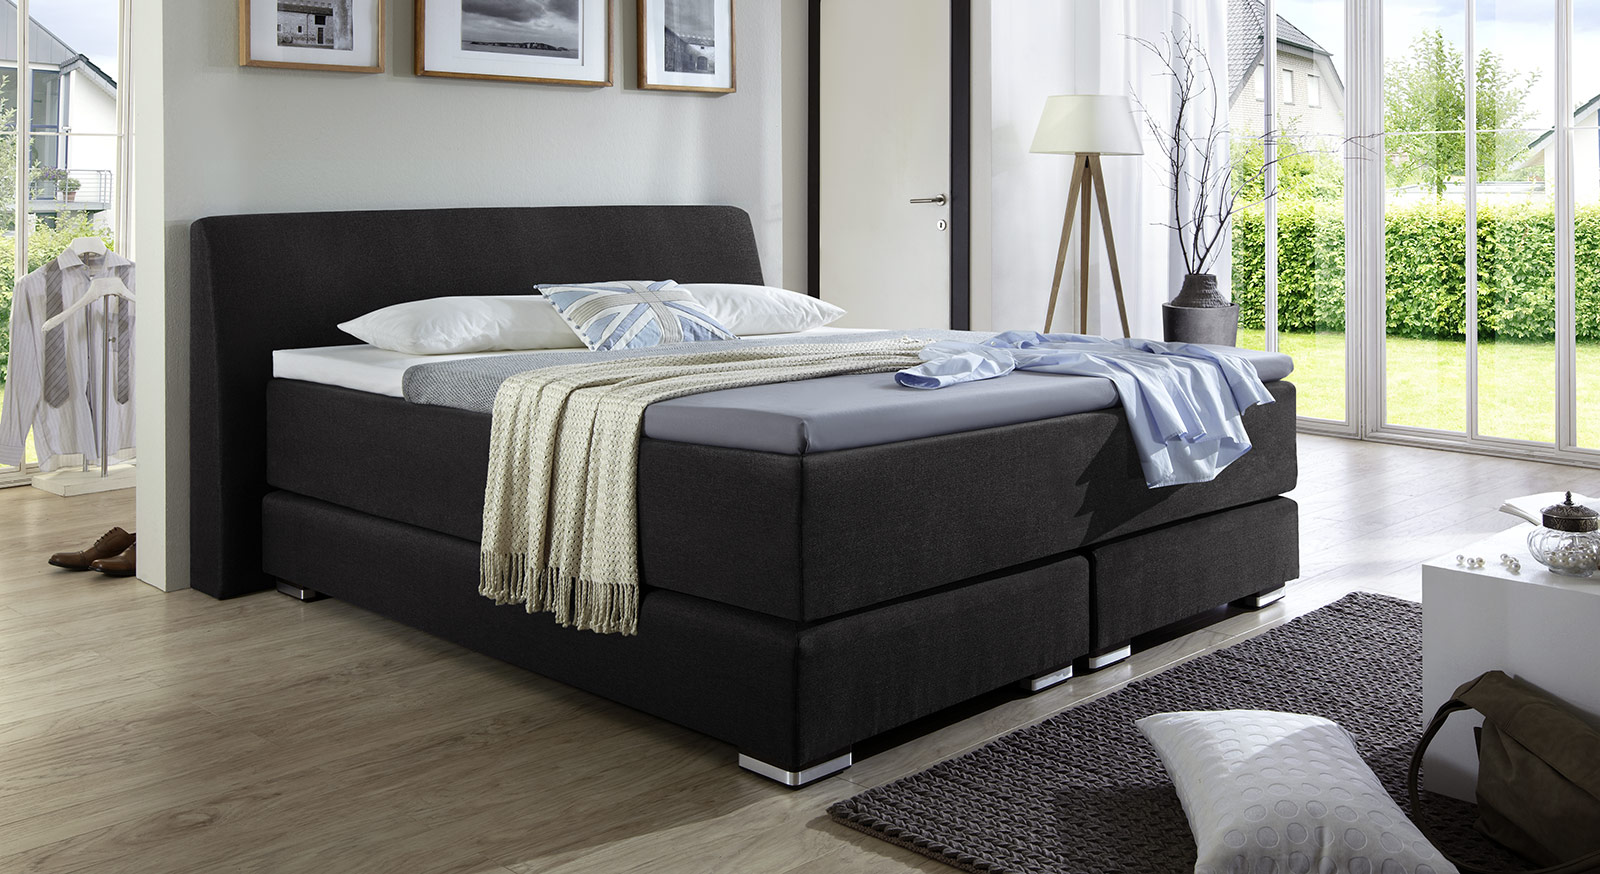 boxspringbett beziehen. Black Bedroom Furniture Sets. Home Design Ideas